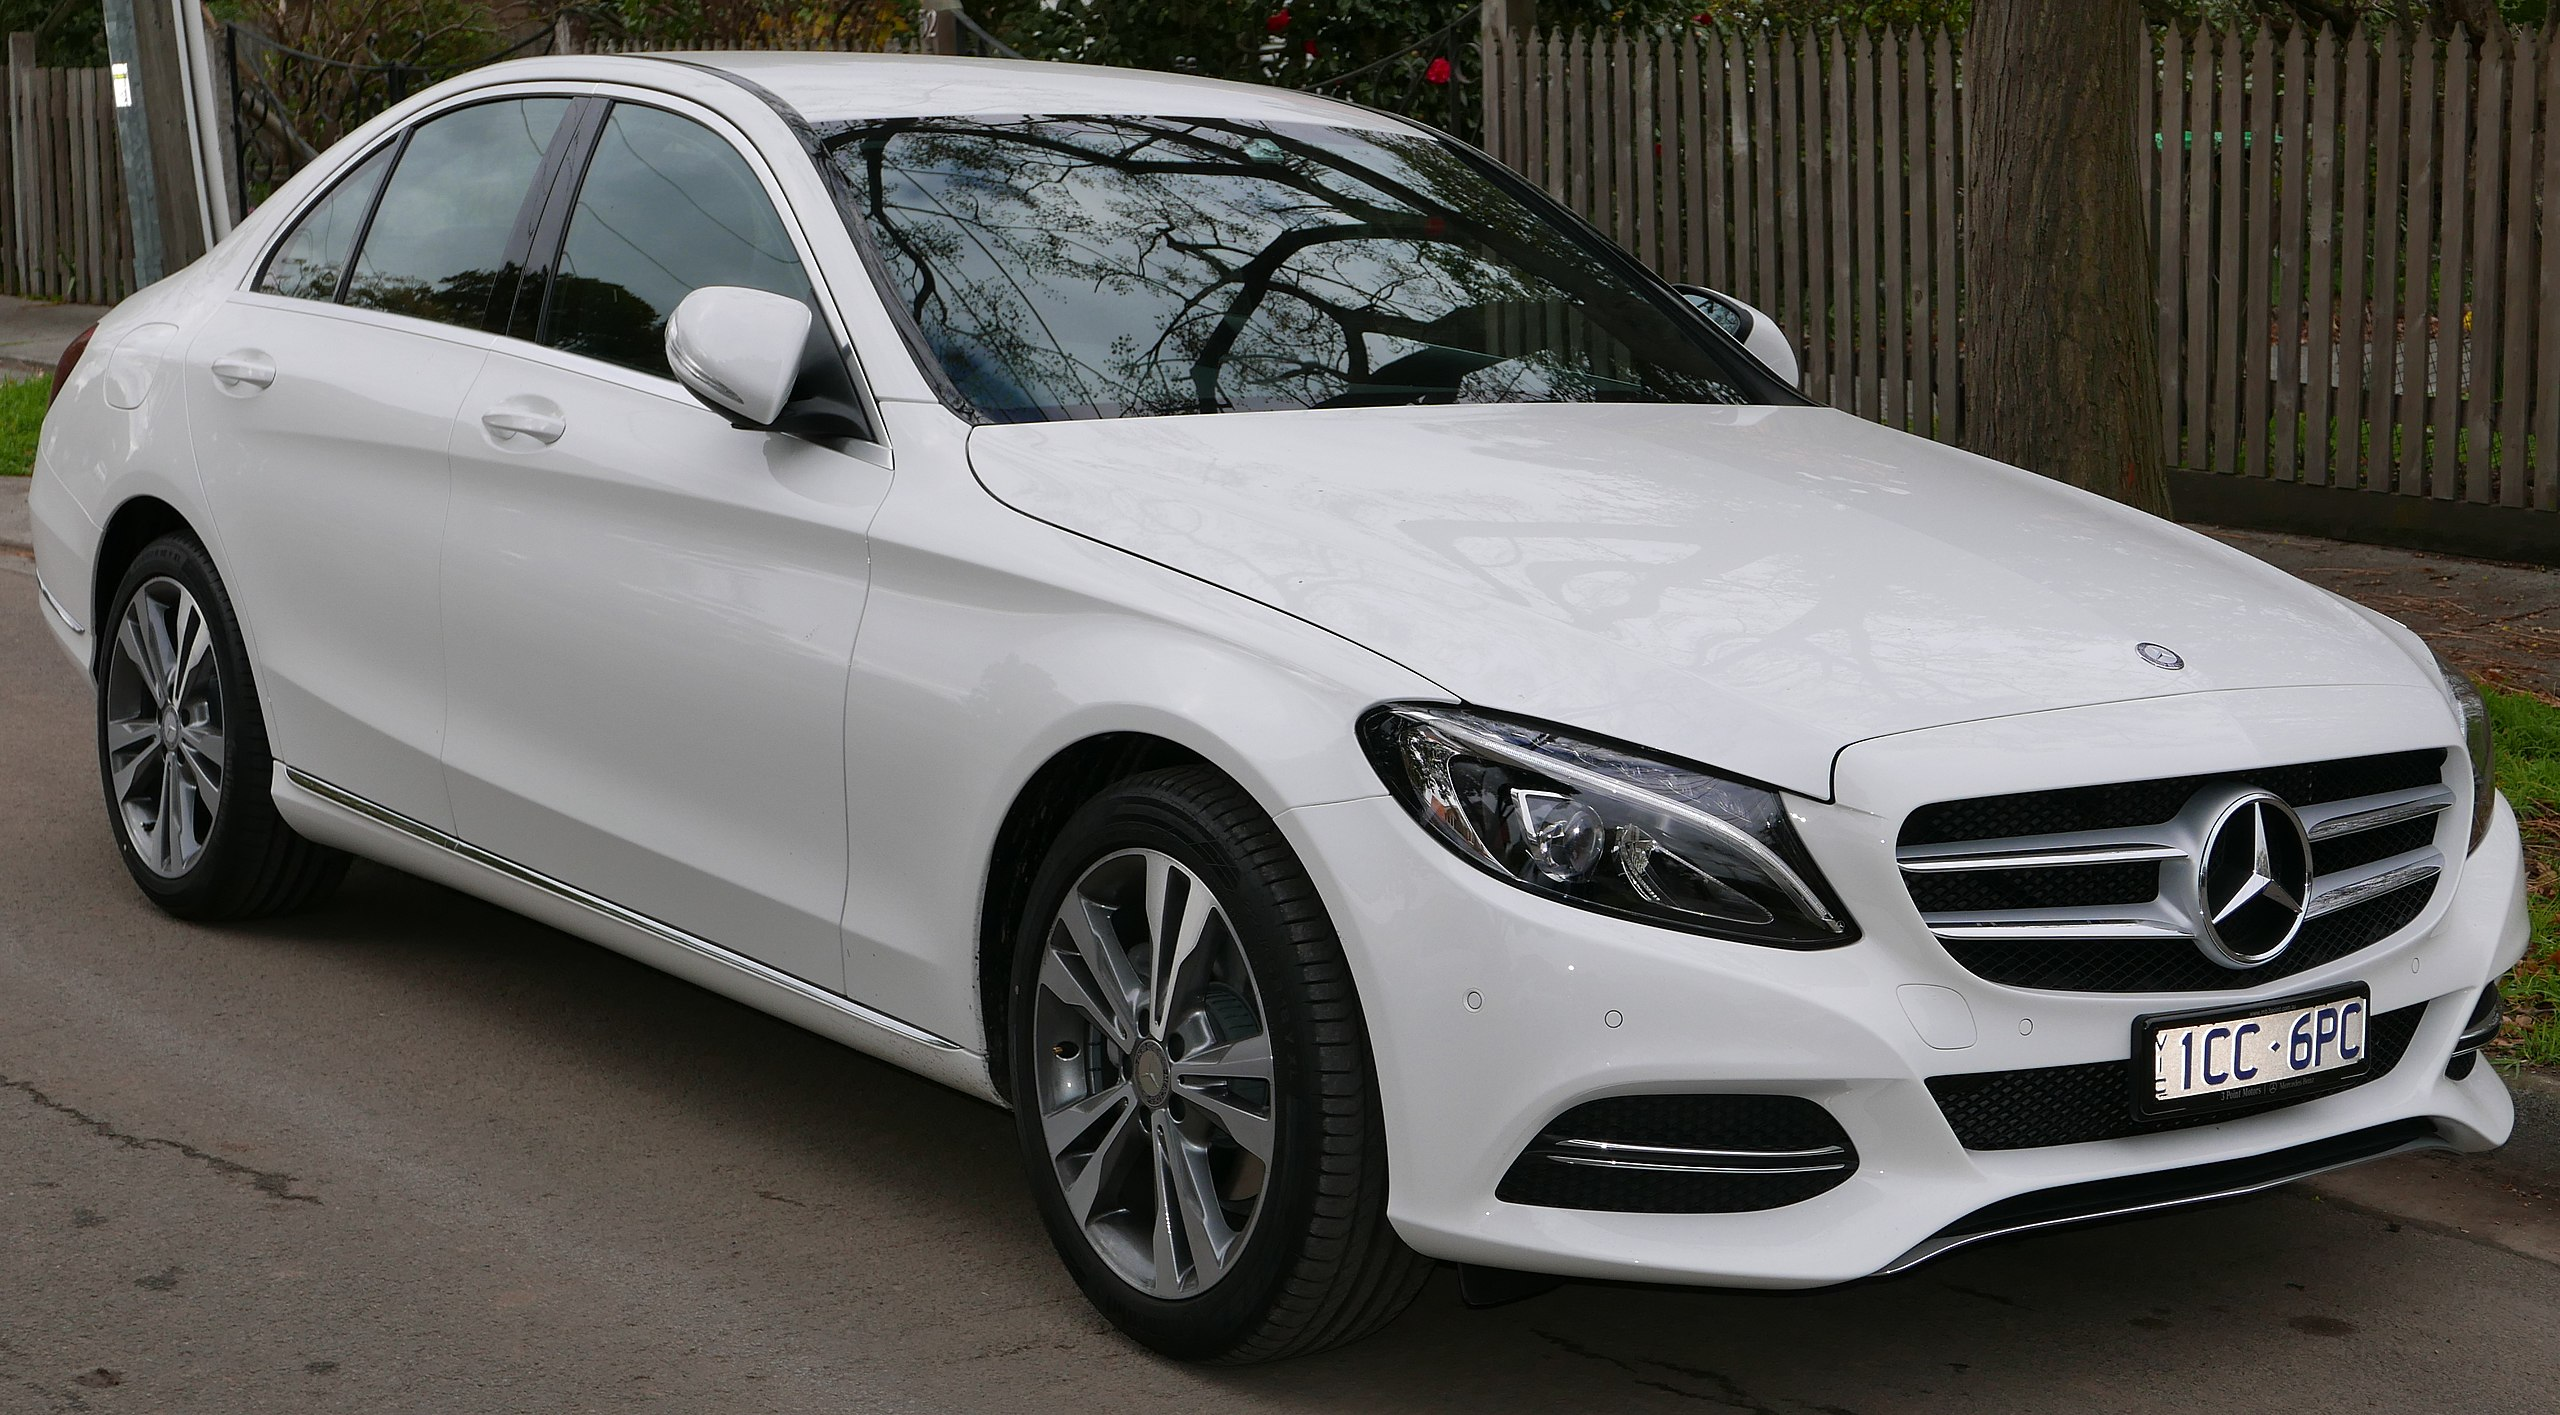 Mercedes C Class Auto Glass Repair and Replacement